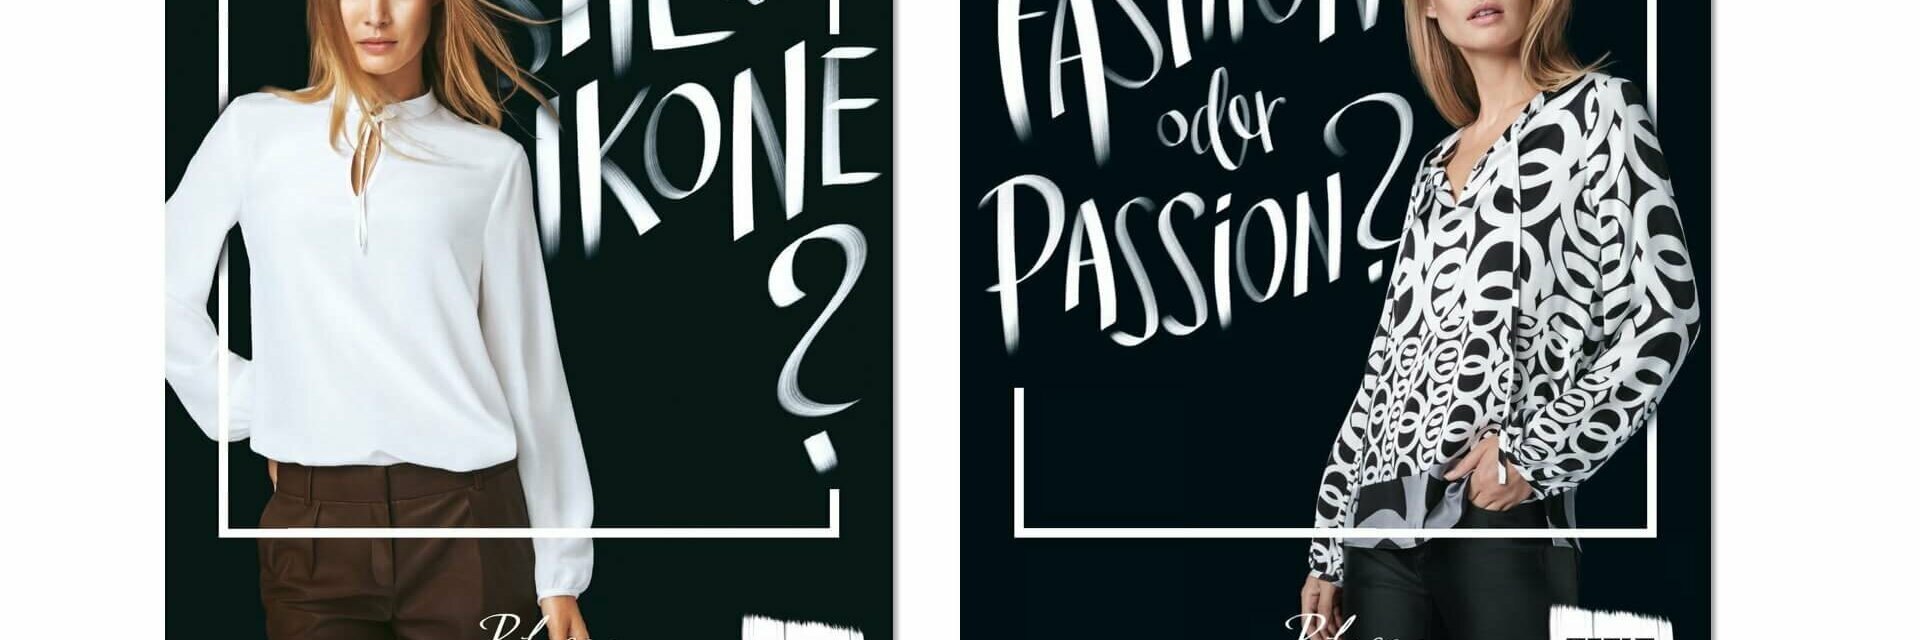 [Translate to English:] ETERNA Fahion oder Passion - STIL oder IKONE?